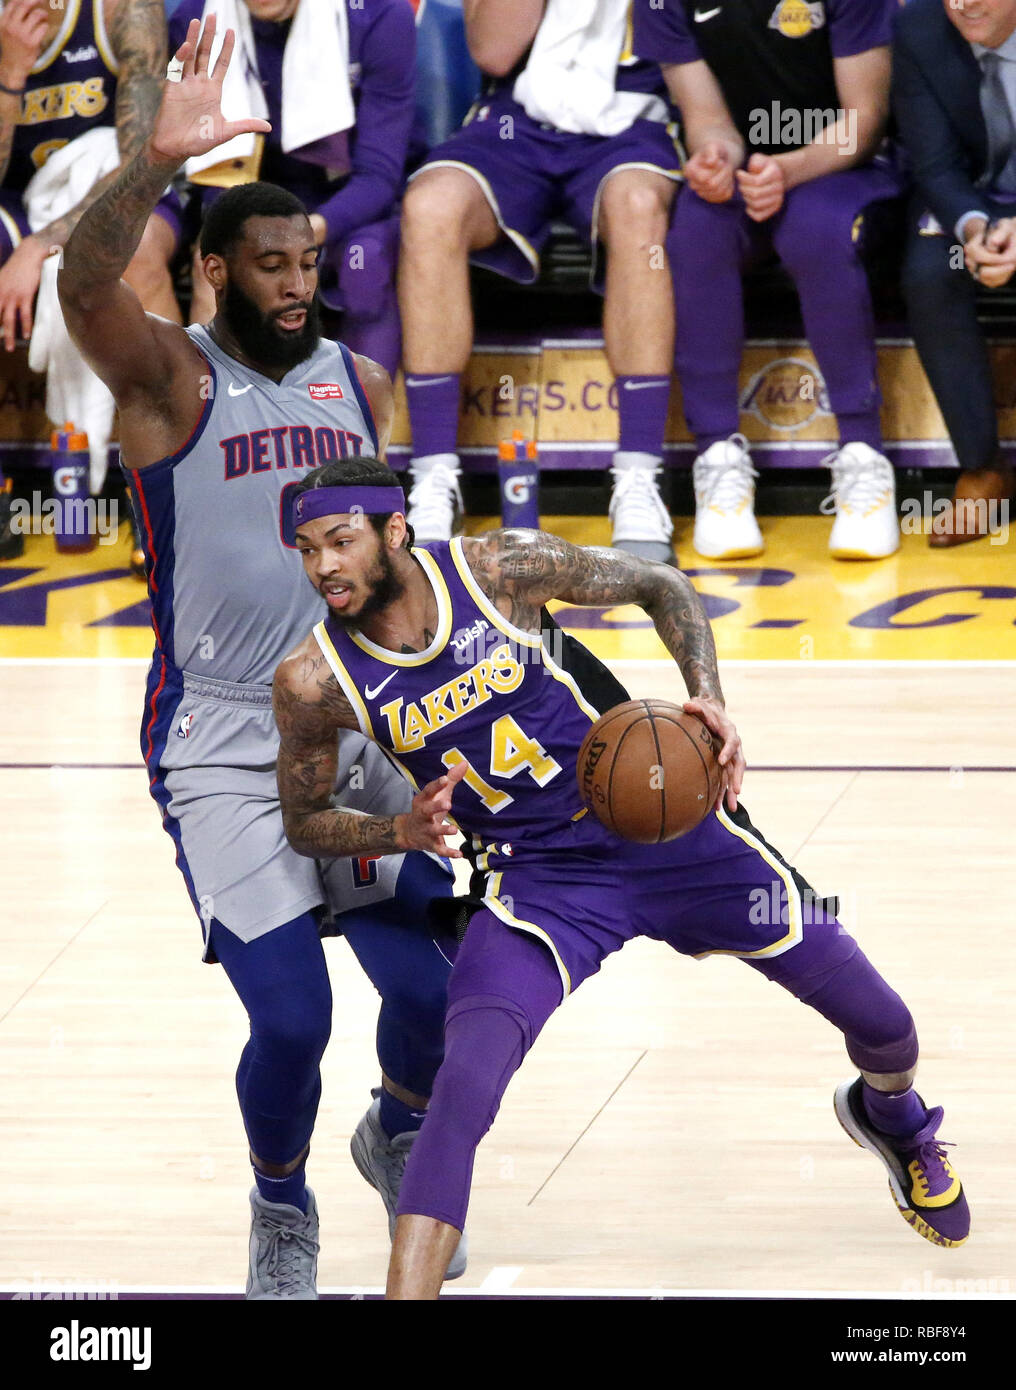 Los Angeles, California, USA. 9th Jan, 2019. Los Angeles Lakers' Brandon Ingram (14) drives against Detroit Pistons' Andre Drummond (0) during an NBA basketball game between Los Angeles Lakers and Detroit Pistons Wednesday, Jan. 9, 2019, in Los Angeles. Credit: Ringo Chiu/ZUMA Wire/Alamy Live News Stock Photo